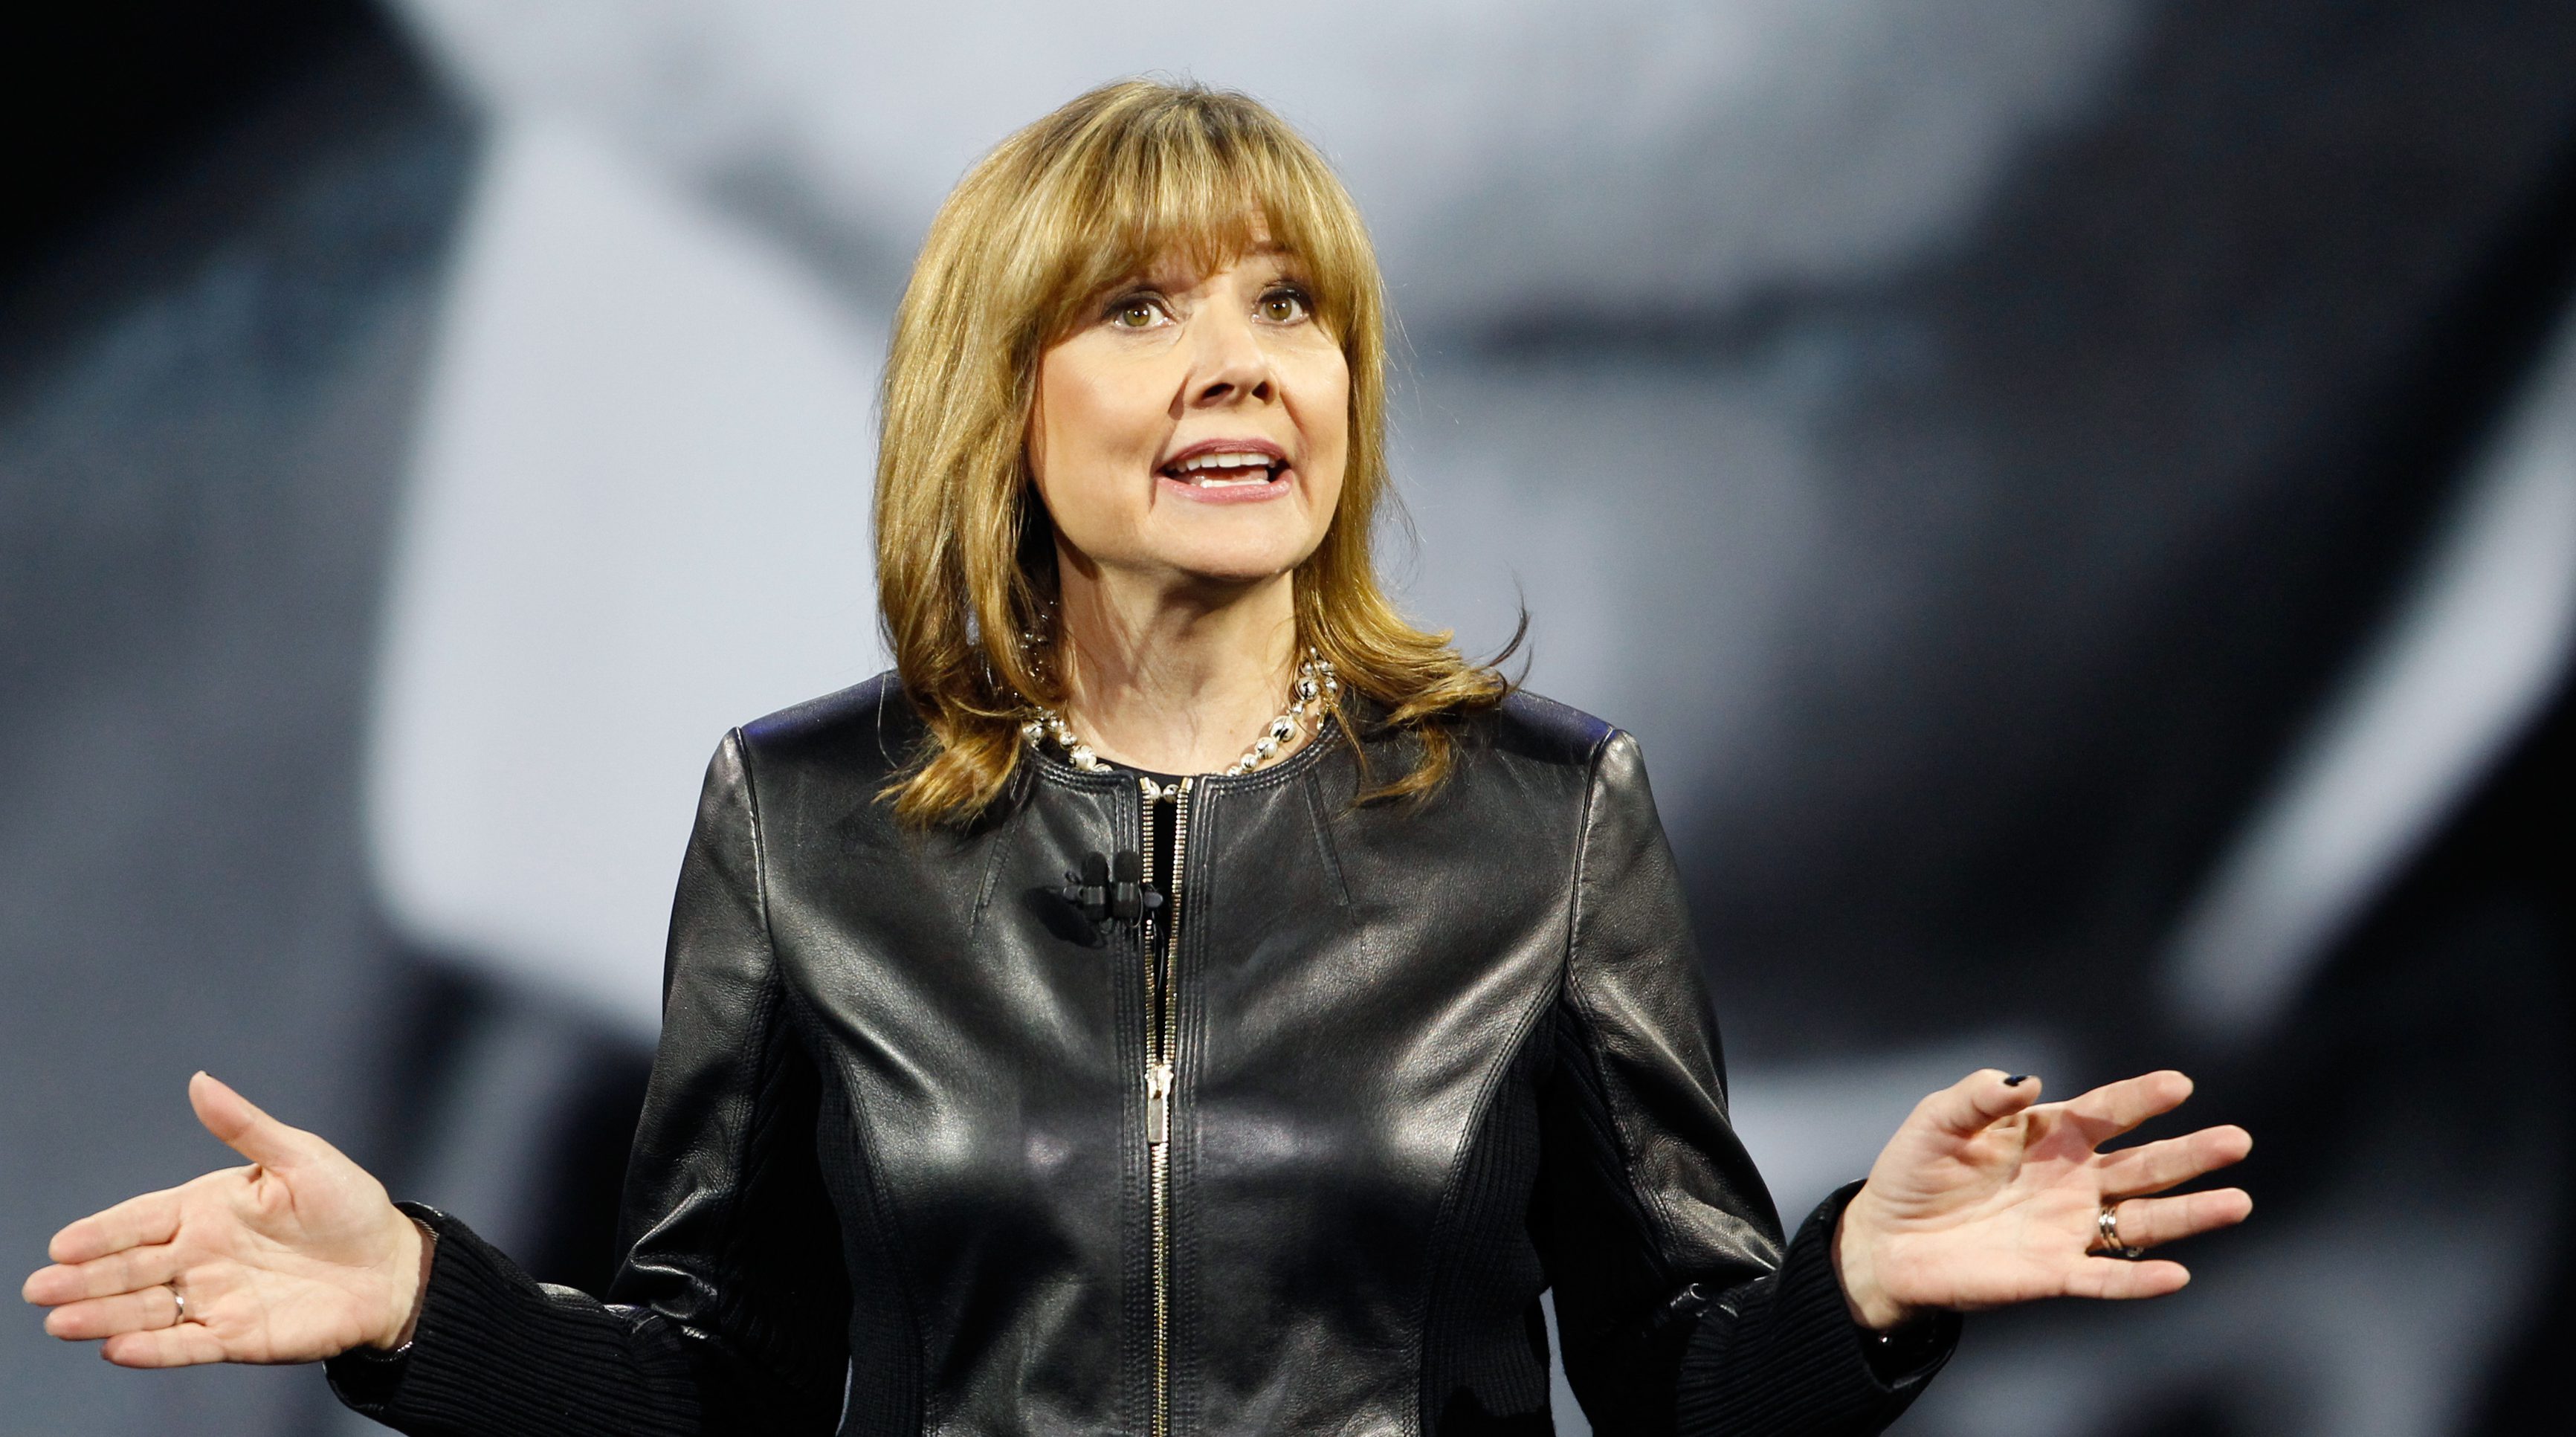 GM CEO Mary Barra says GM's dress code is only two words